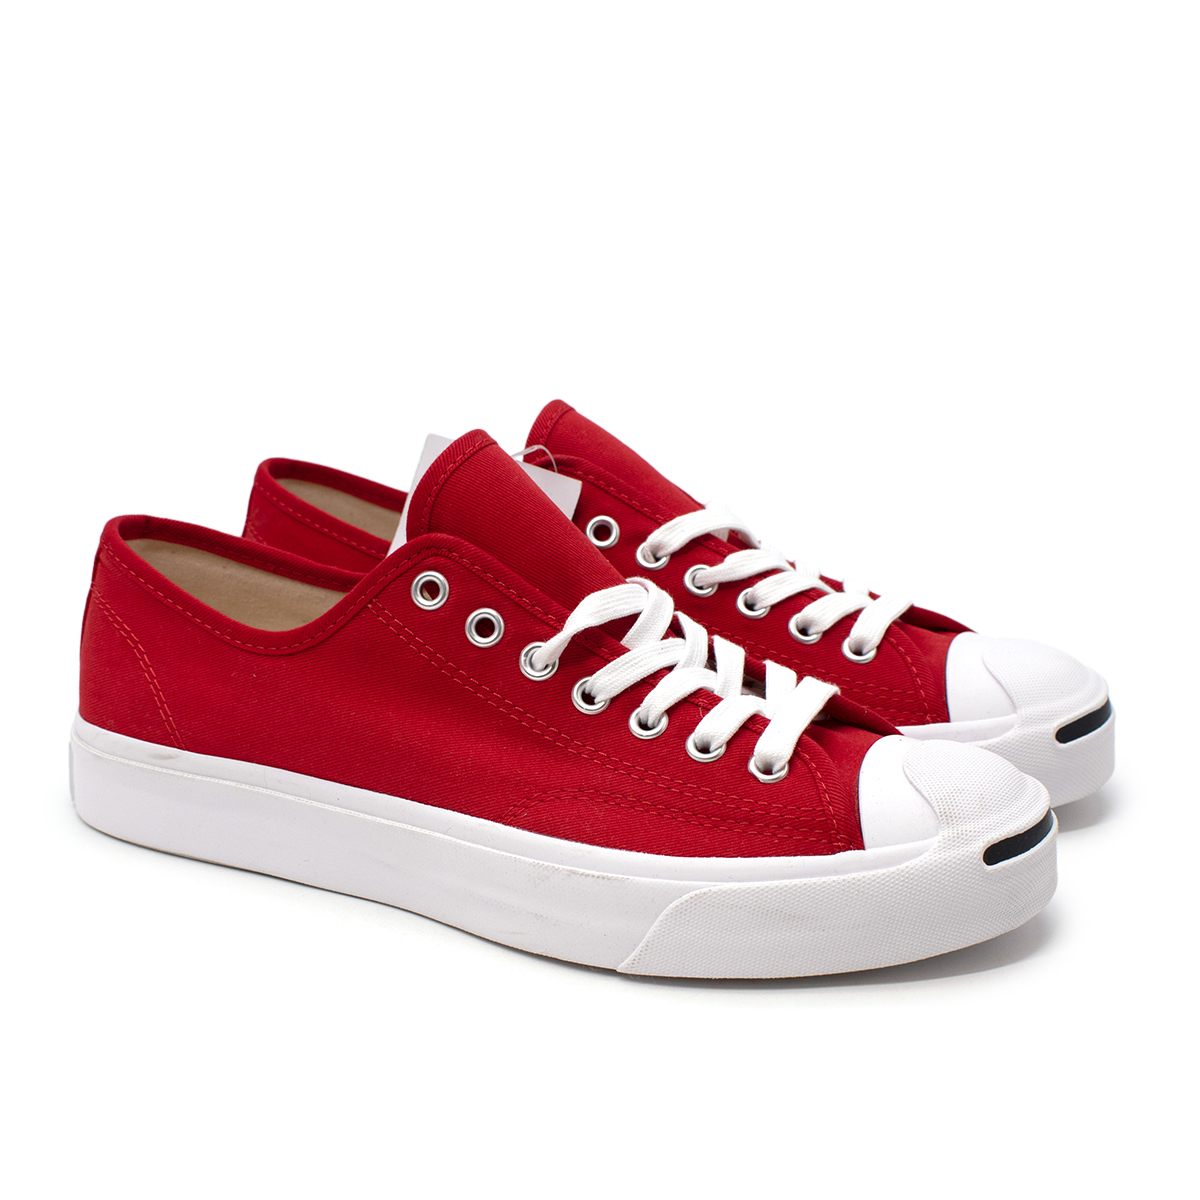 Converse x Jack Purcell First In Class Red Trainers